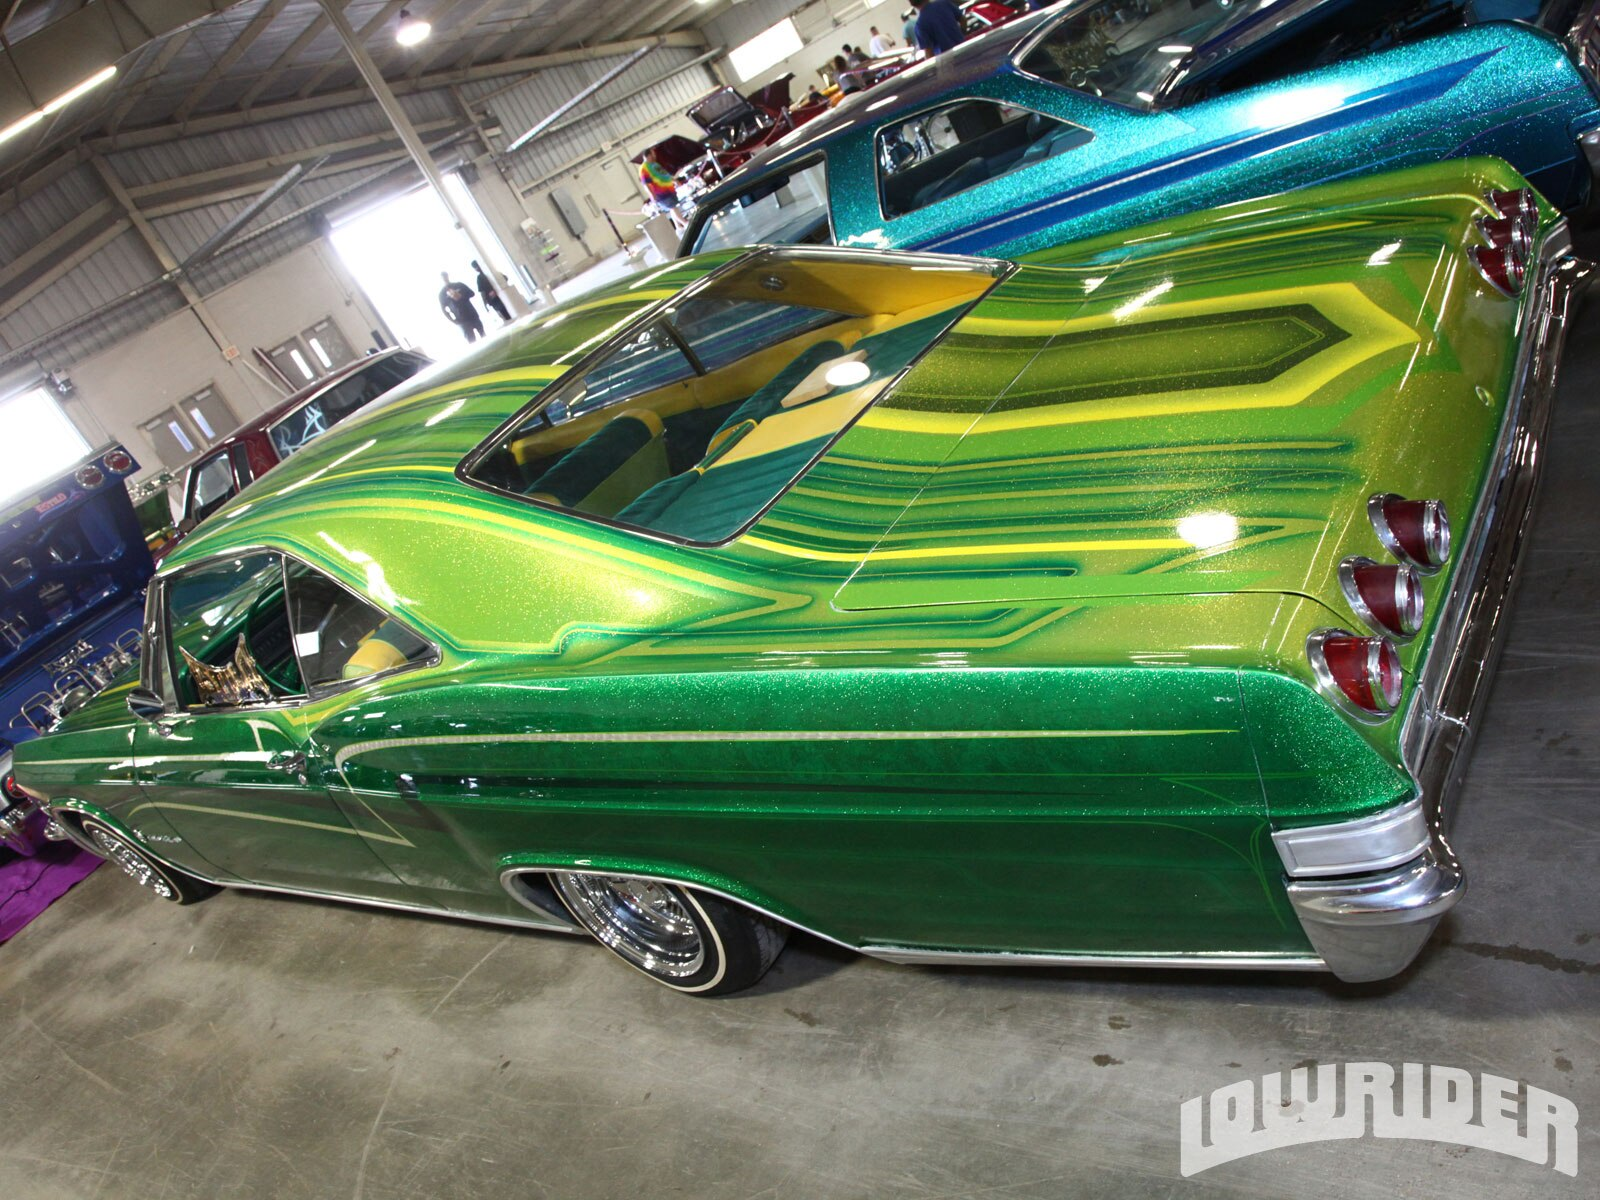 1208-lrmp-02-o-40th-annual-tejano-super-show-custom-lowrider